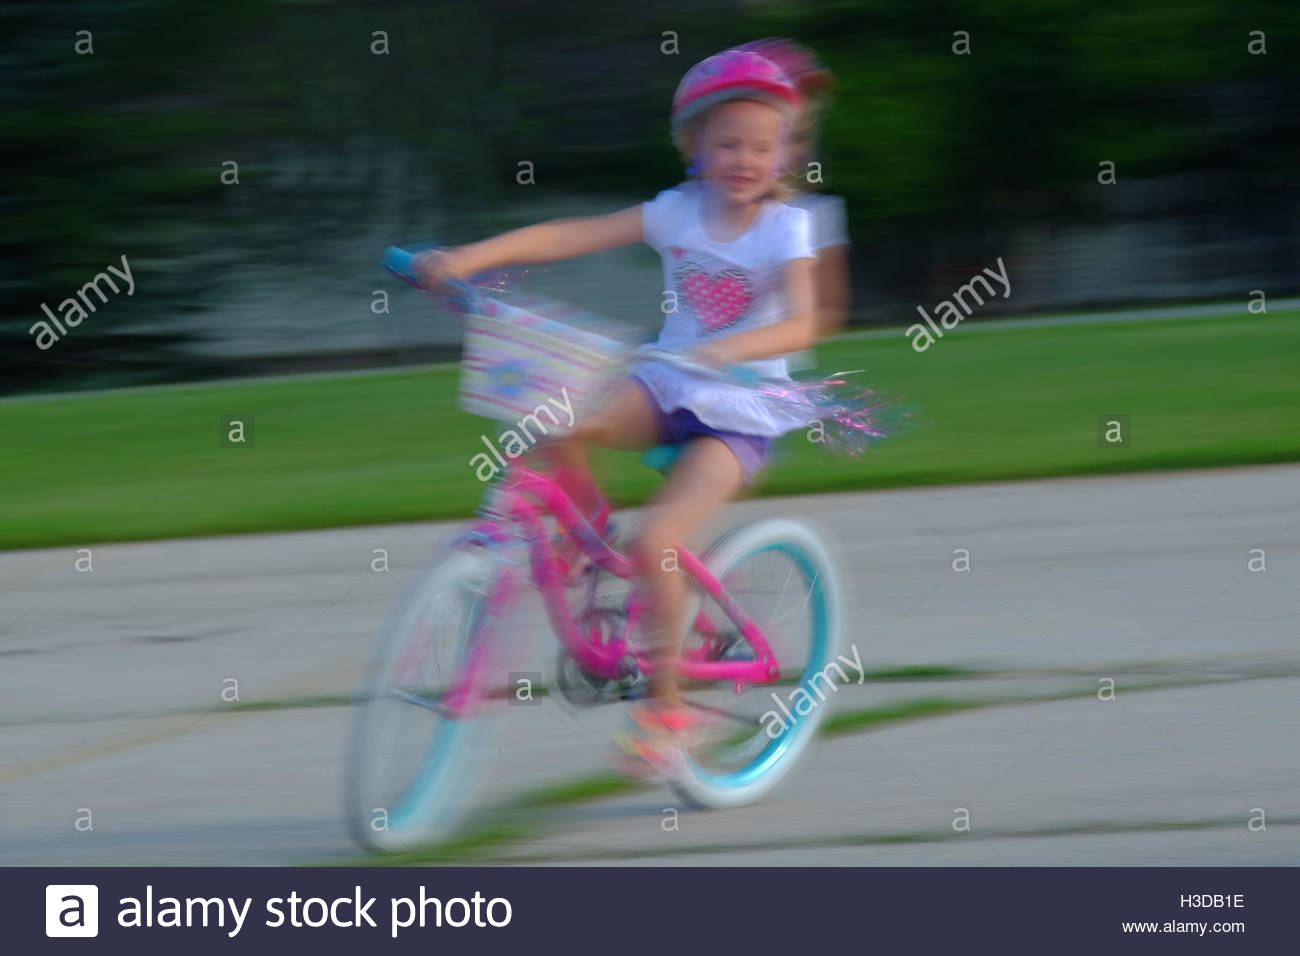 A girl practices her two wheeled bike riding skills in a parking lot. - Stock Image